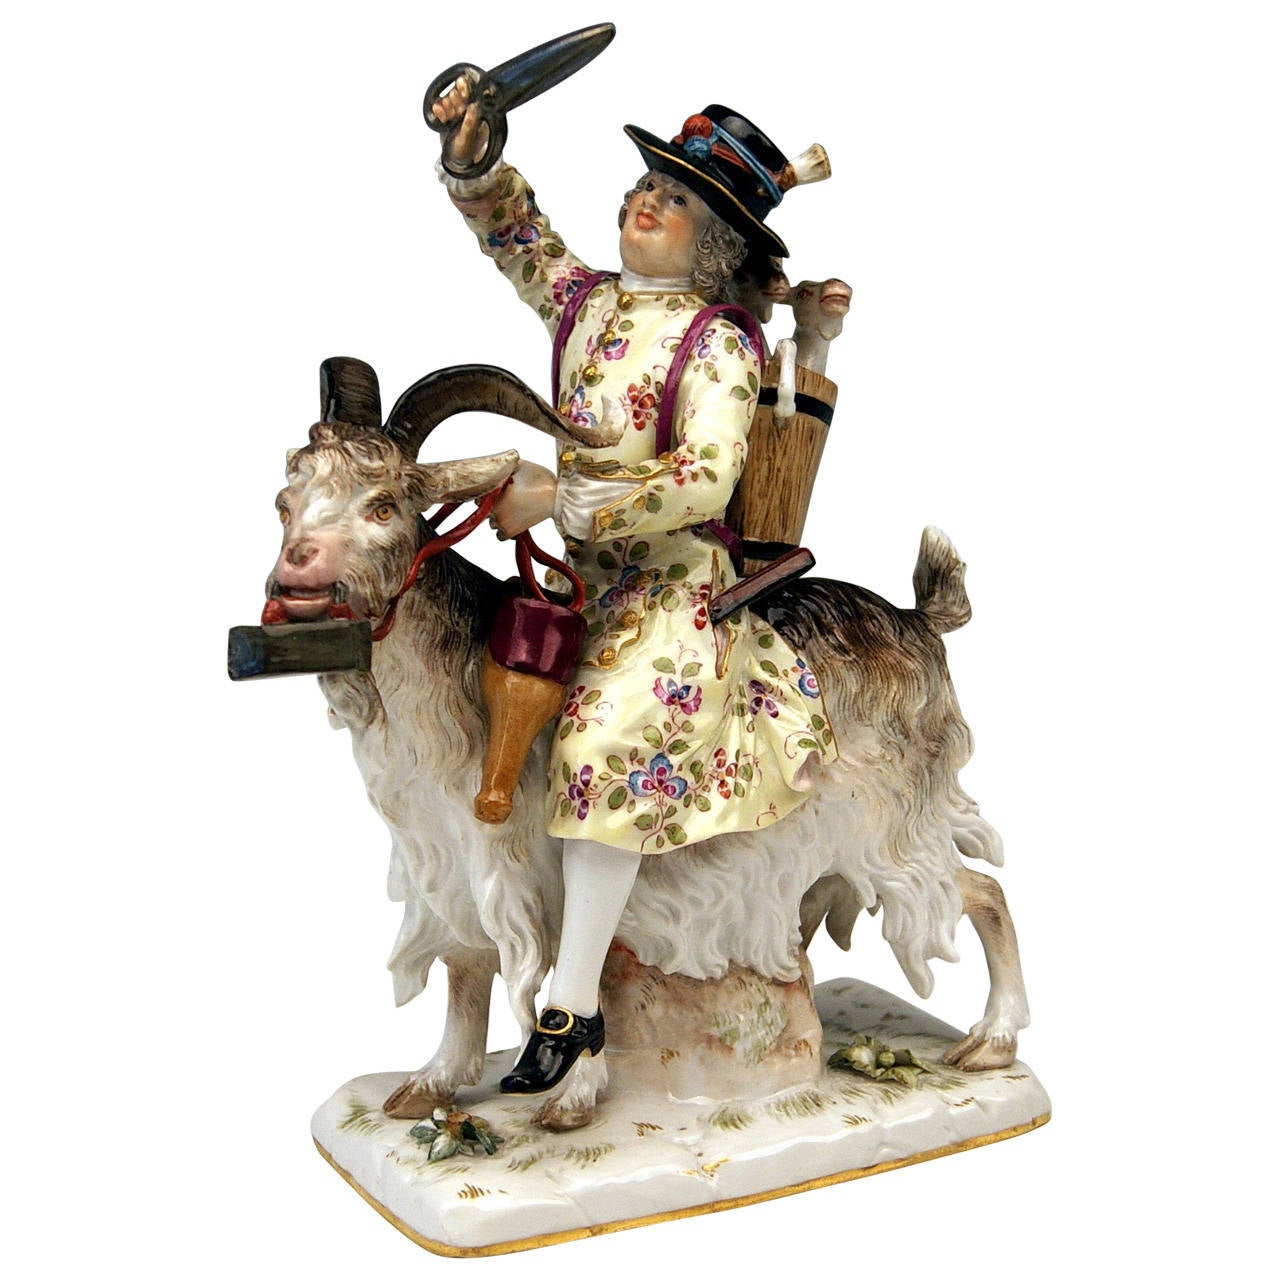 Meissen Figurine Group by Kändler Tailor of Count Bruehl on a Goat, circa 1870